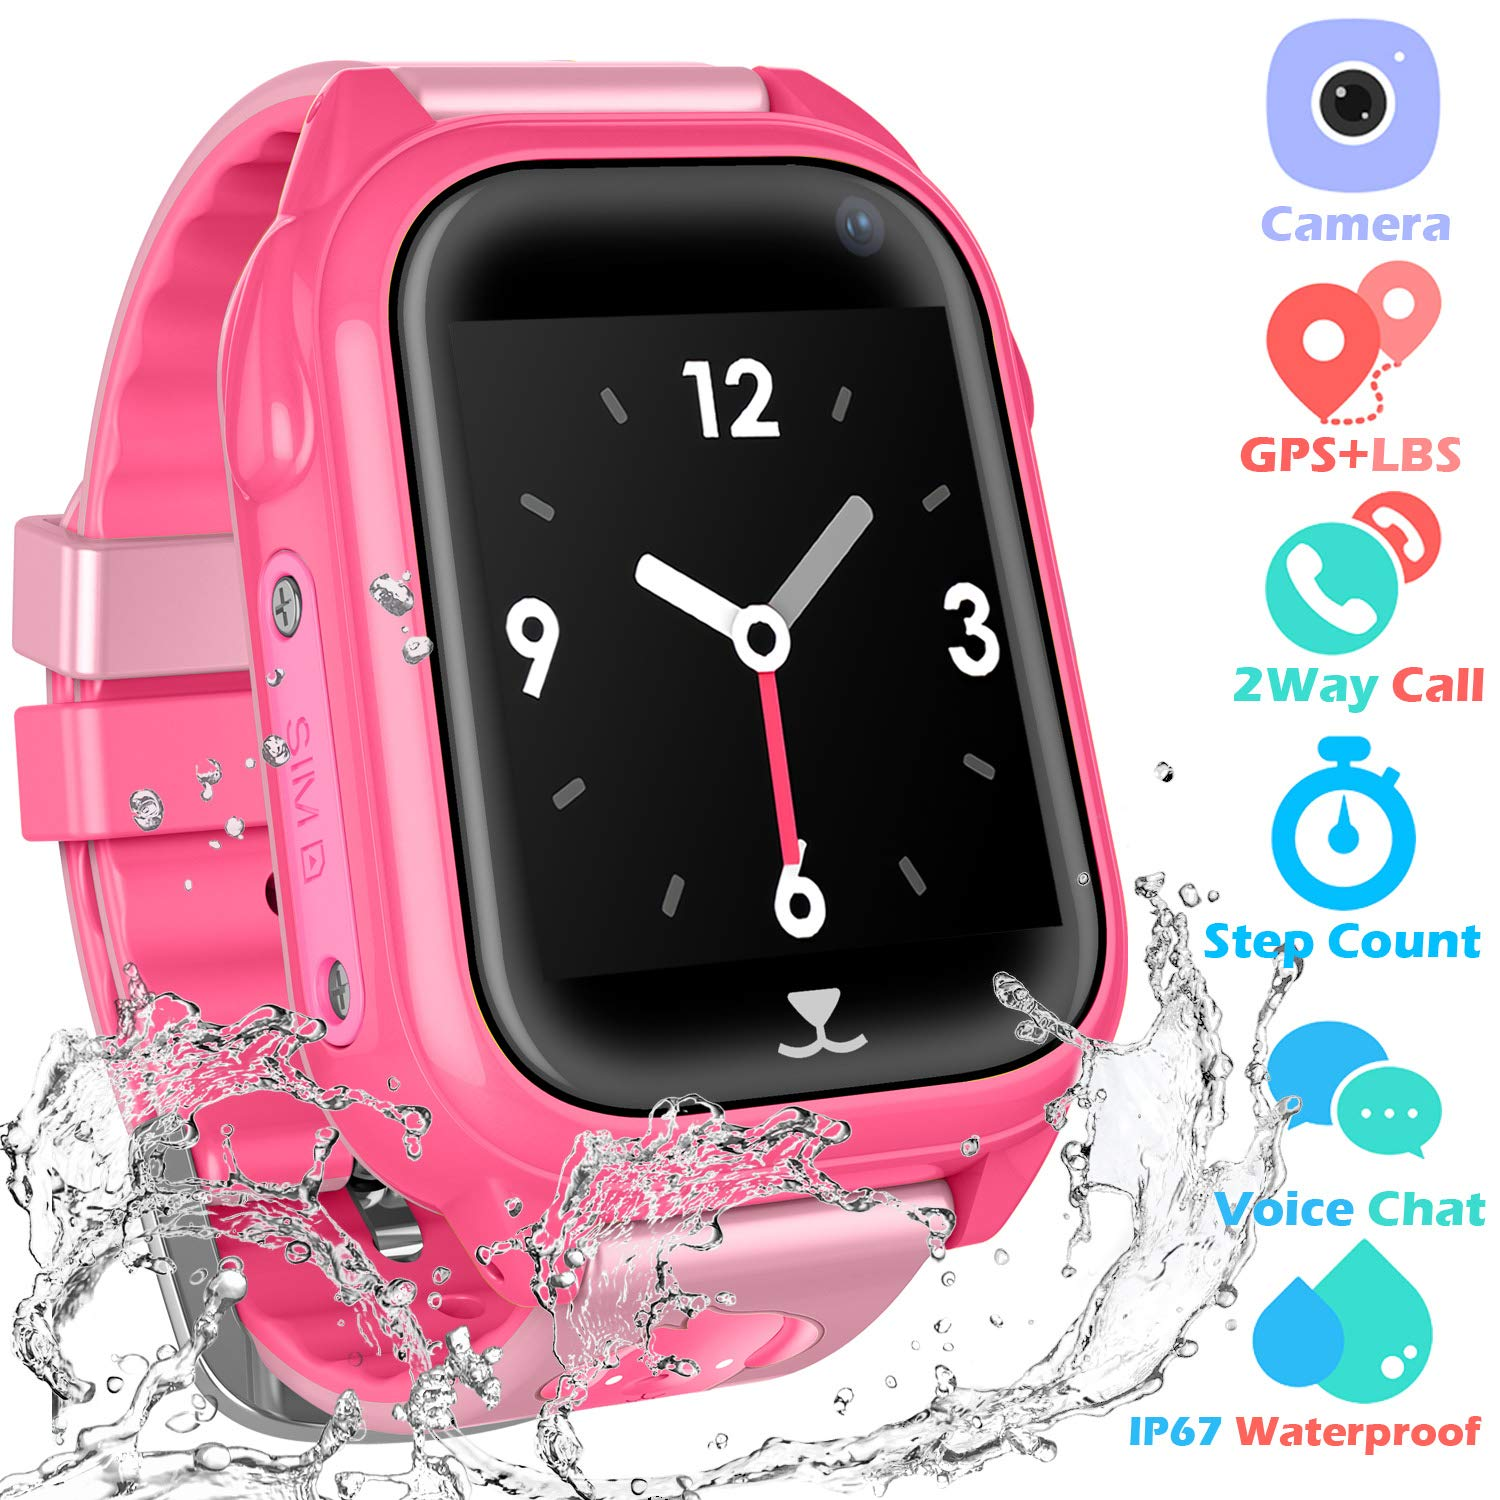 Kids Waterproof Smartwatch with GPS Tracker - Fitness Tracker Watch Phone with GPS Locator Voice Chat SOS Alarm Clock Camera Math Game Children ...